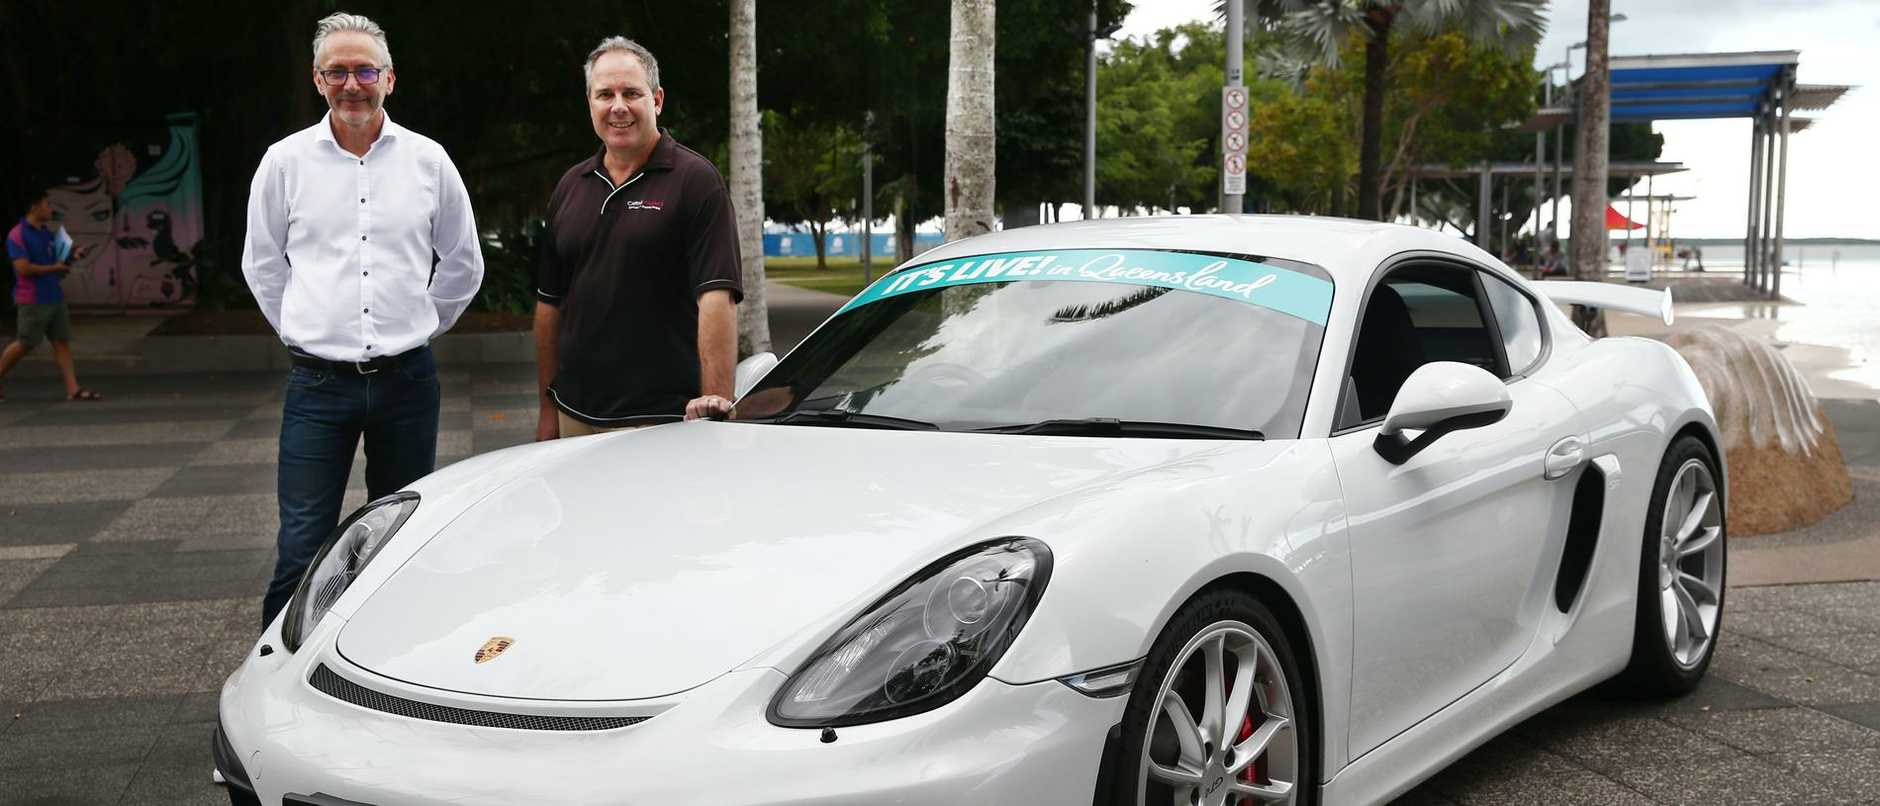 QLD_CP_NEWS_TARGA_18JUN19